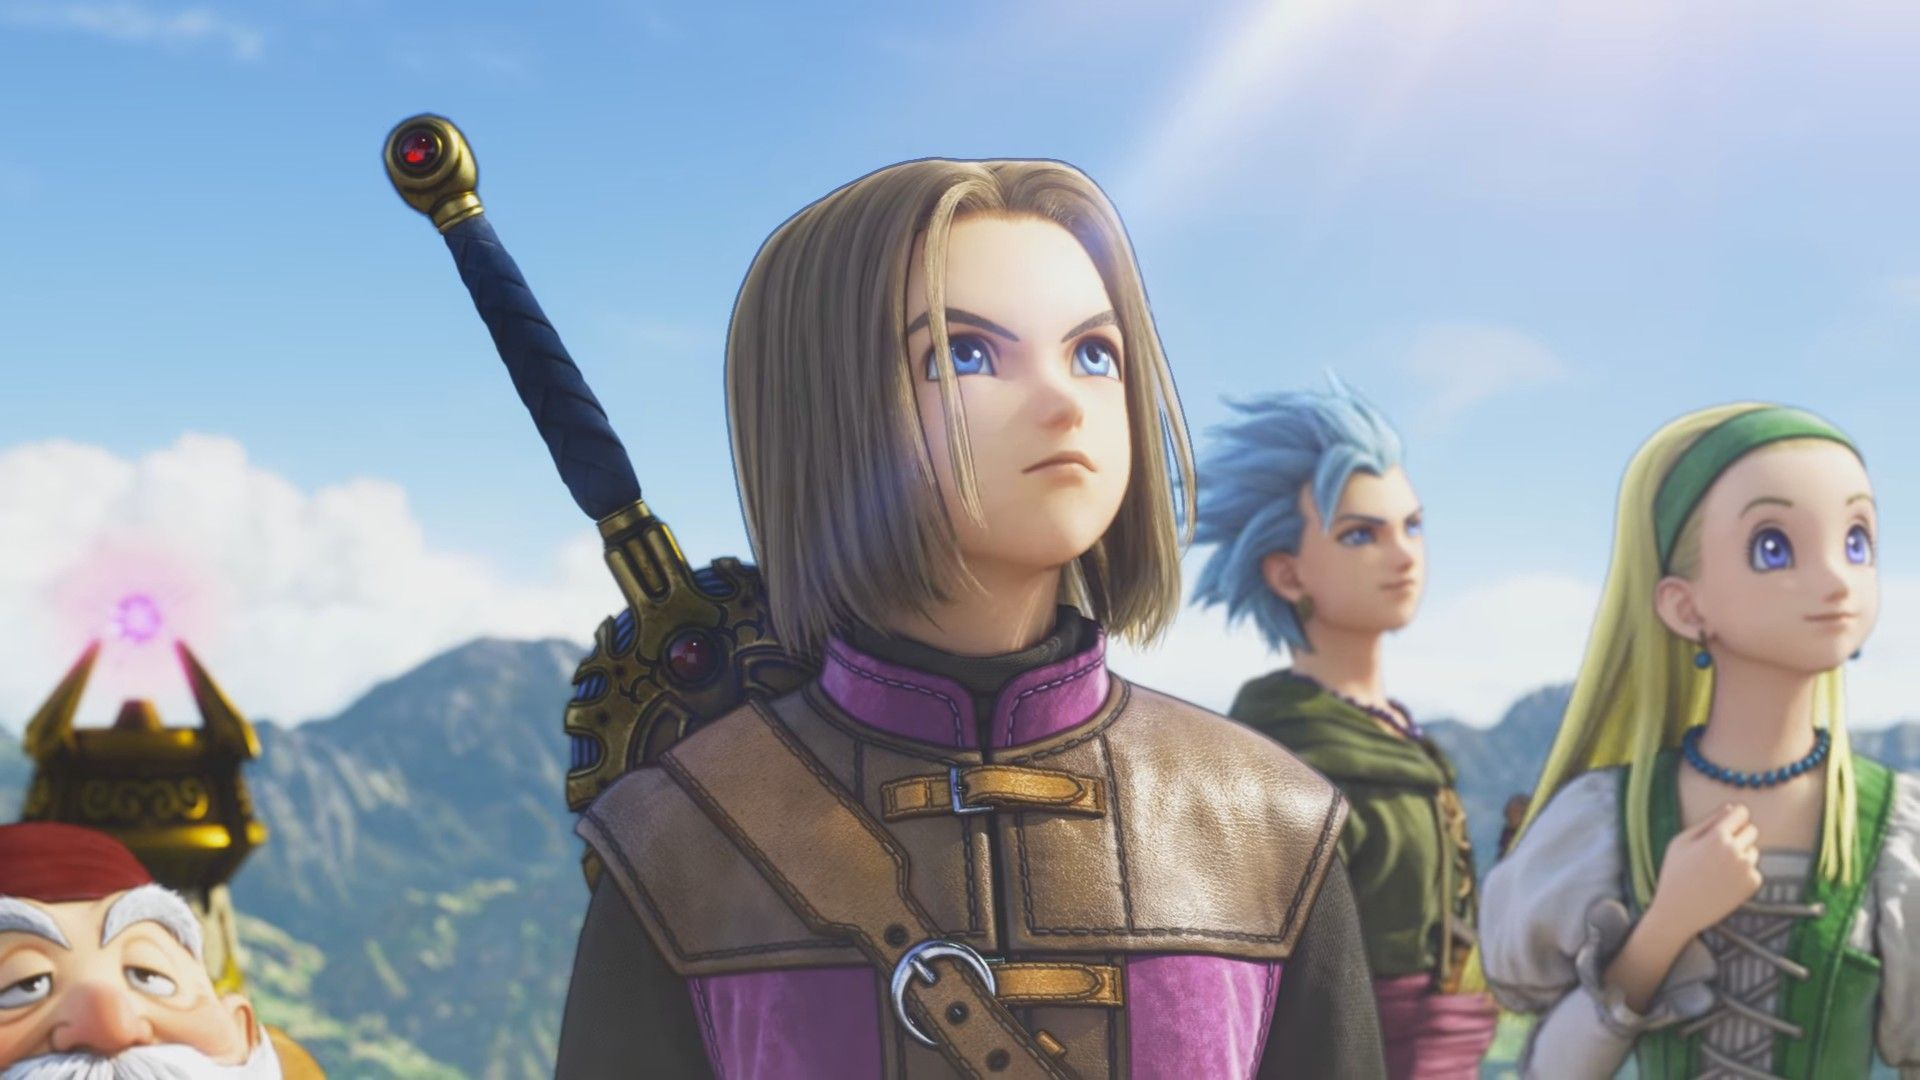 Dragon Quest Xi S Shows Nintendo Switch Exclusive Features Amp Gorgeous Limited Edition Console Http Bit Ly 2lnzap3 Dragon Quest Ps4 Exclusive Games Dragon